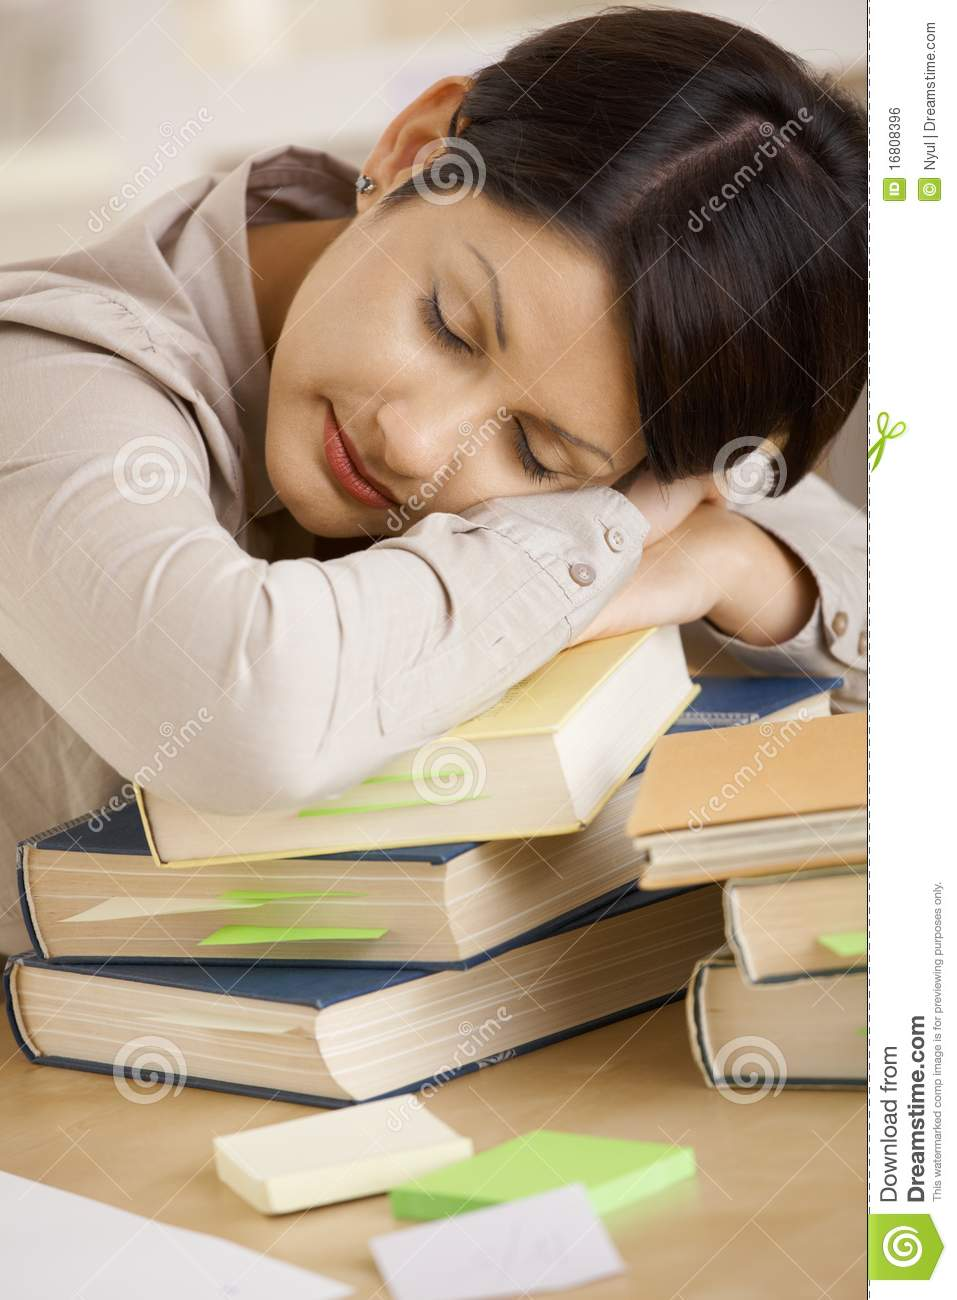 tired college student sleeping on pile of books royalty